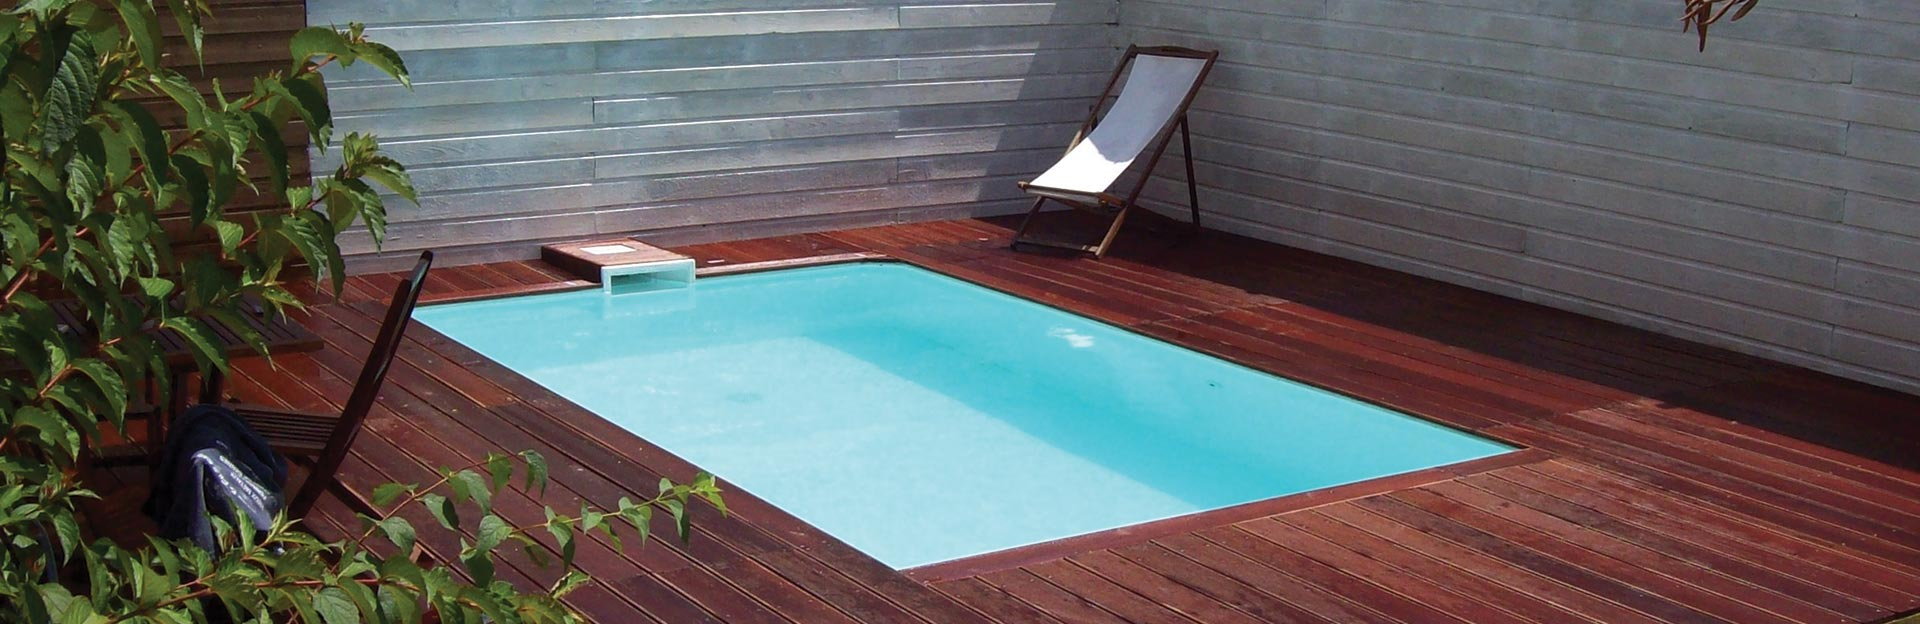 R novation de piscines conception d 39 l ments sur mesure for Liner de piscine sur mesure